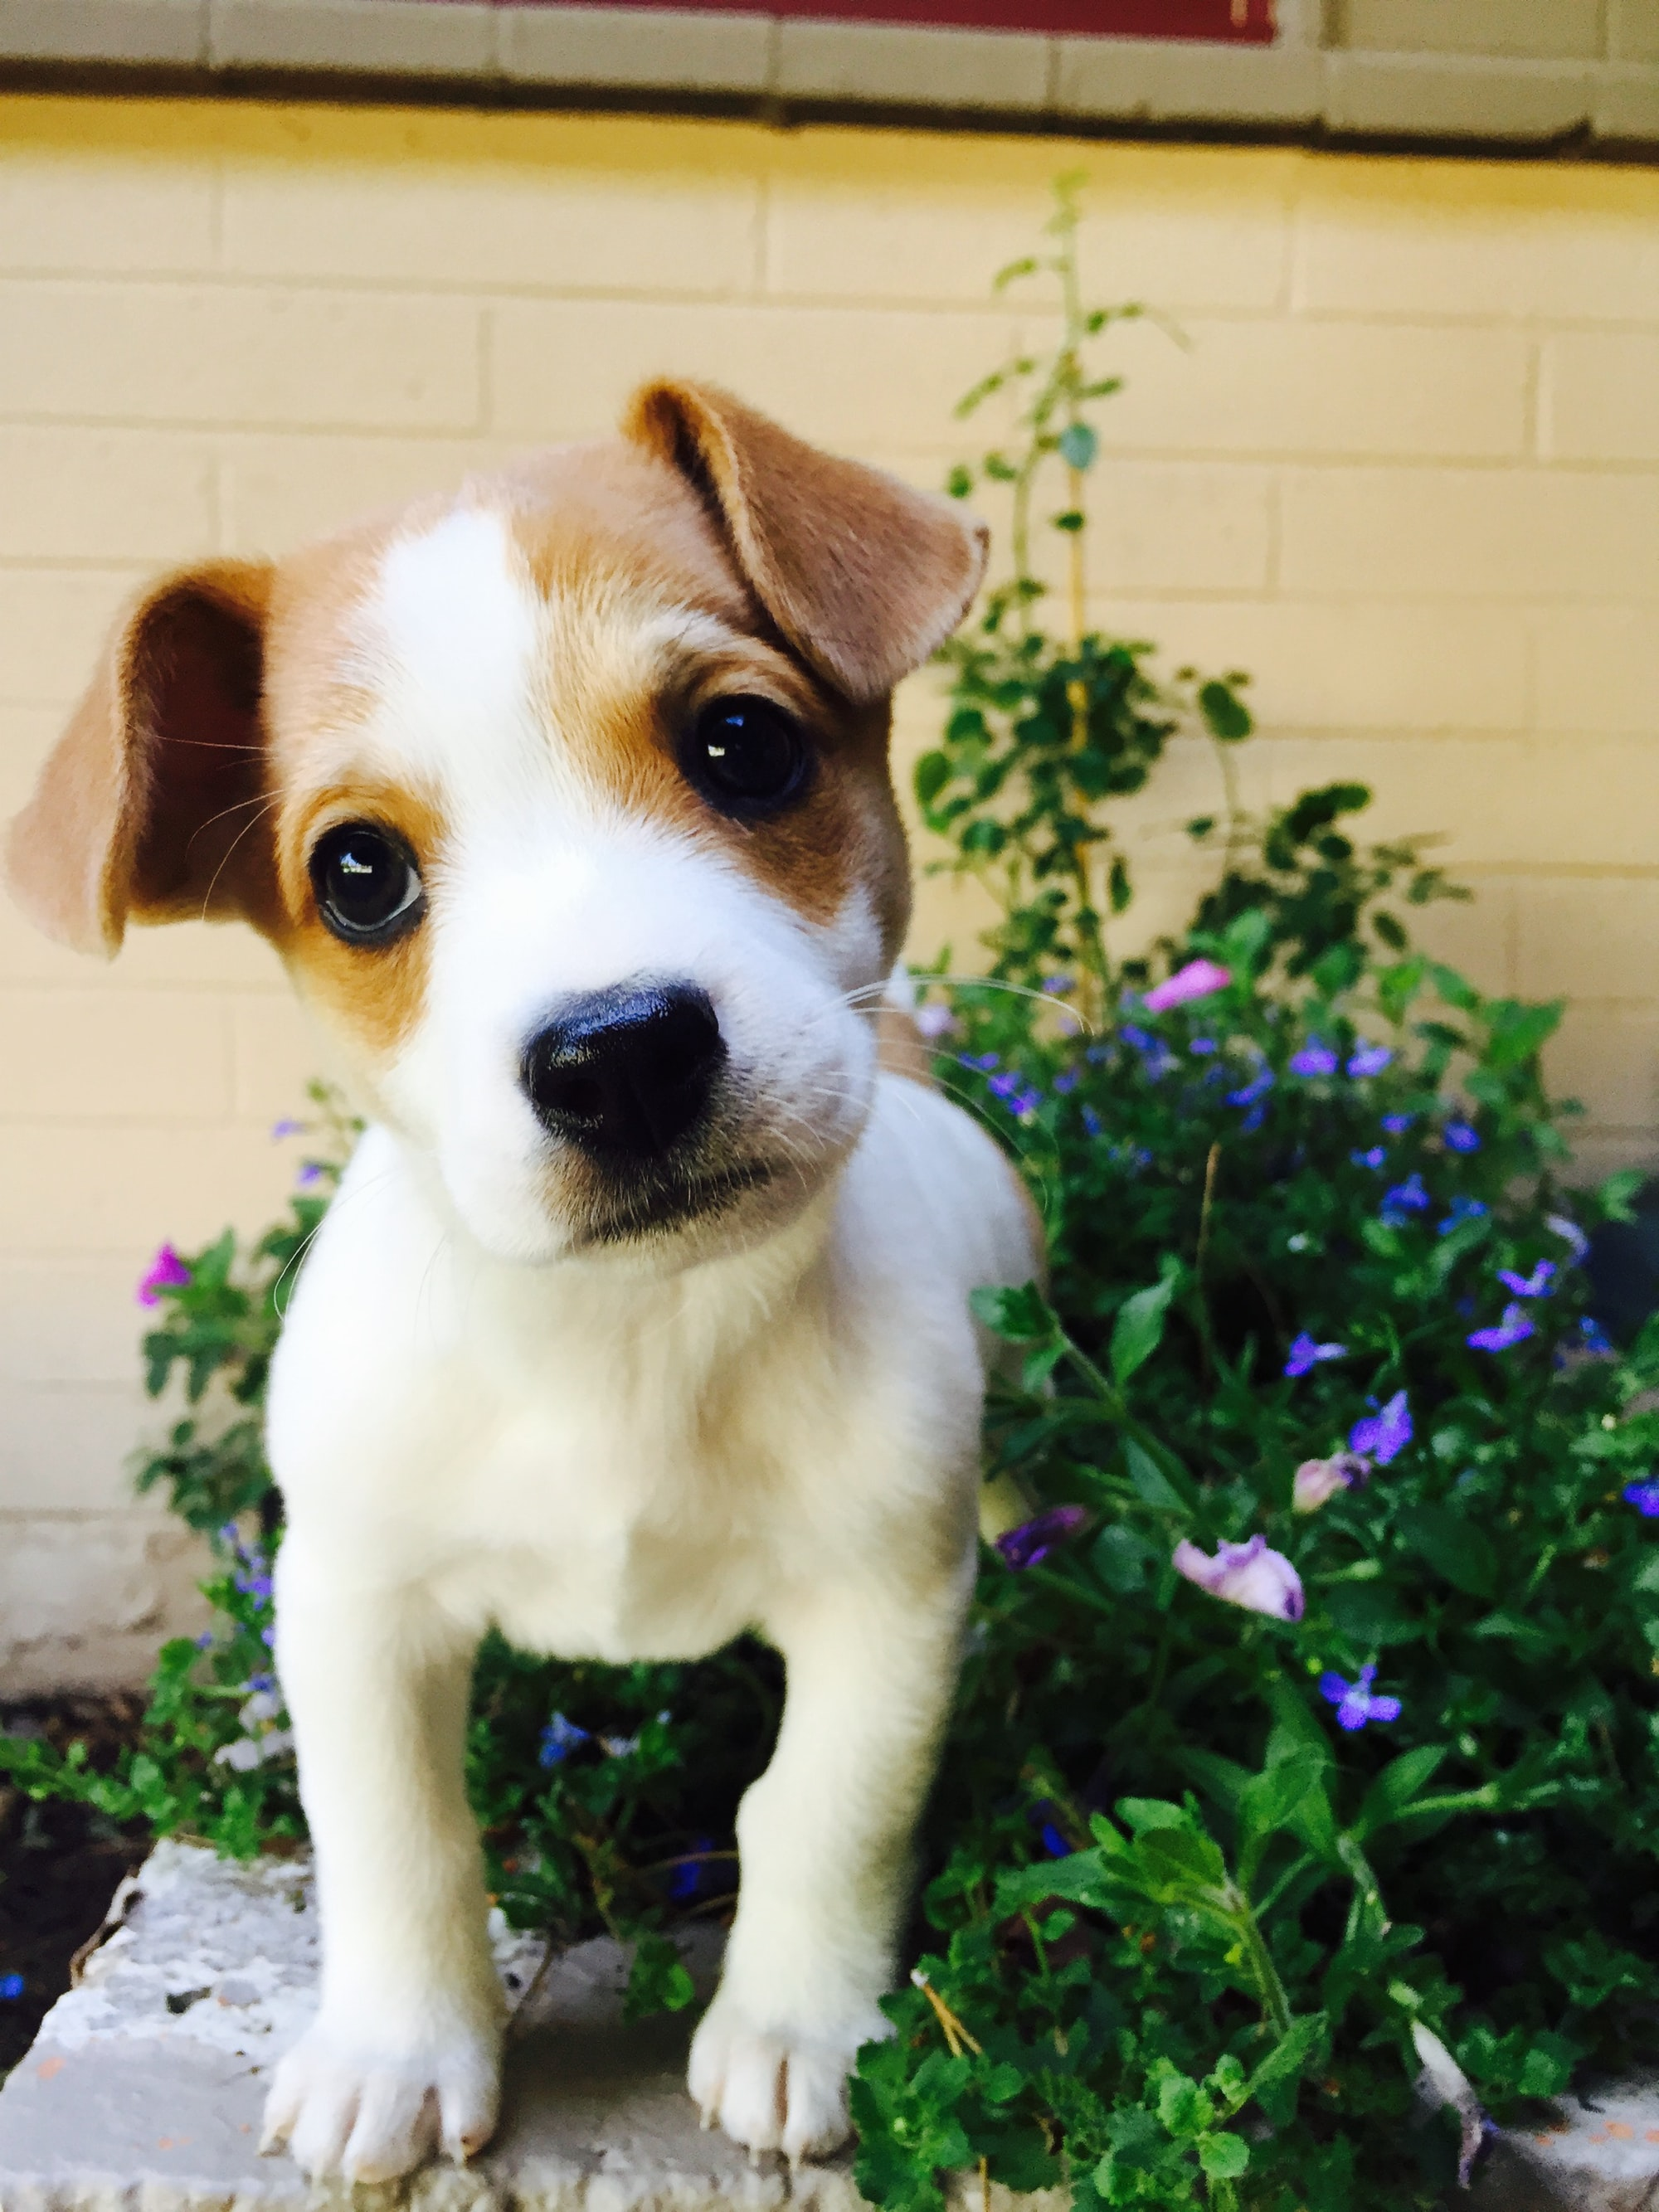 Adorable Instagram Puppies that We Should All Be Following!